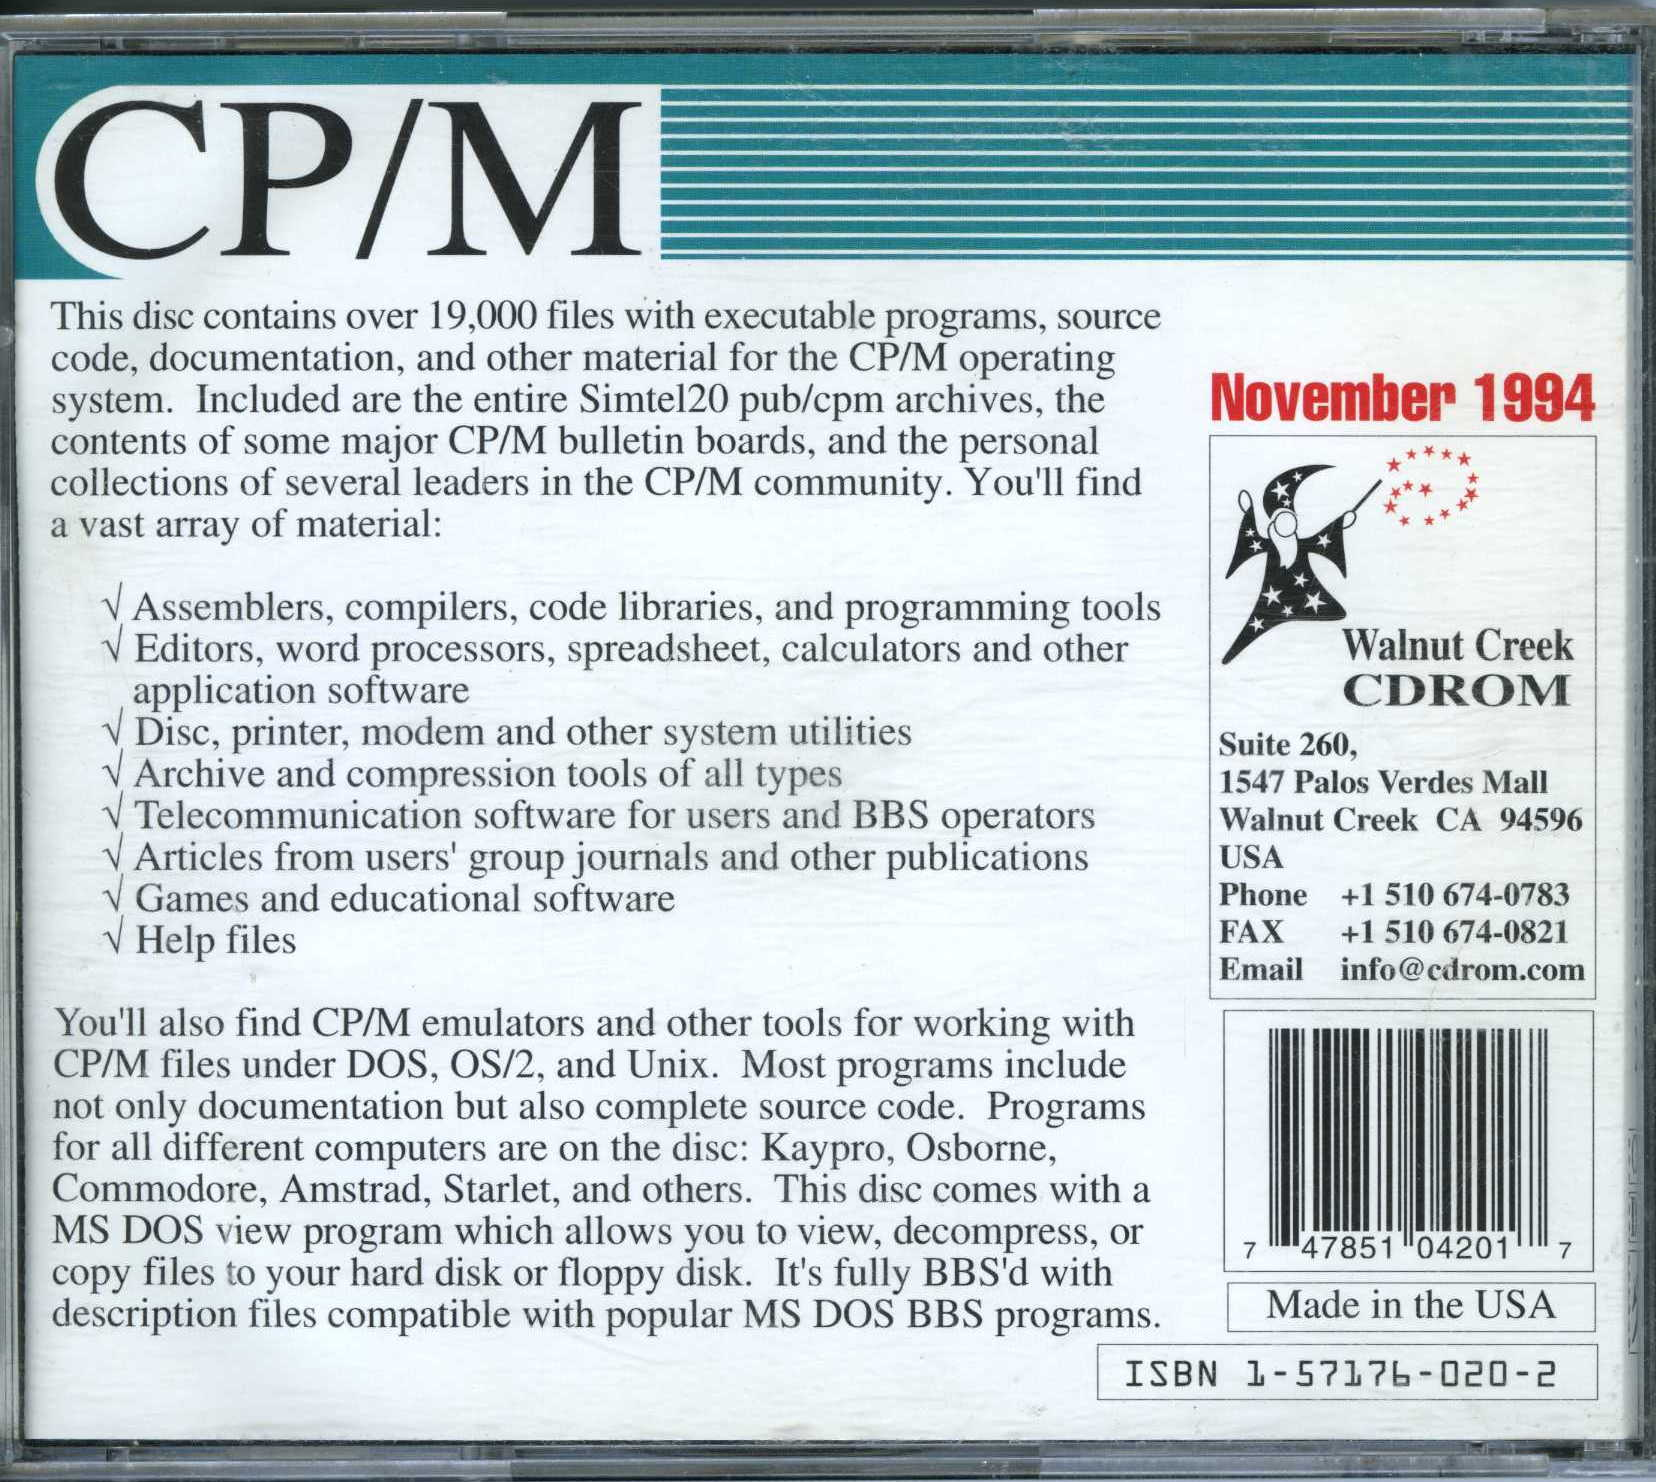 back cover of the Walnut Creek CPM CD-ROM